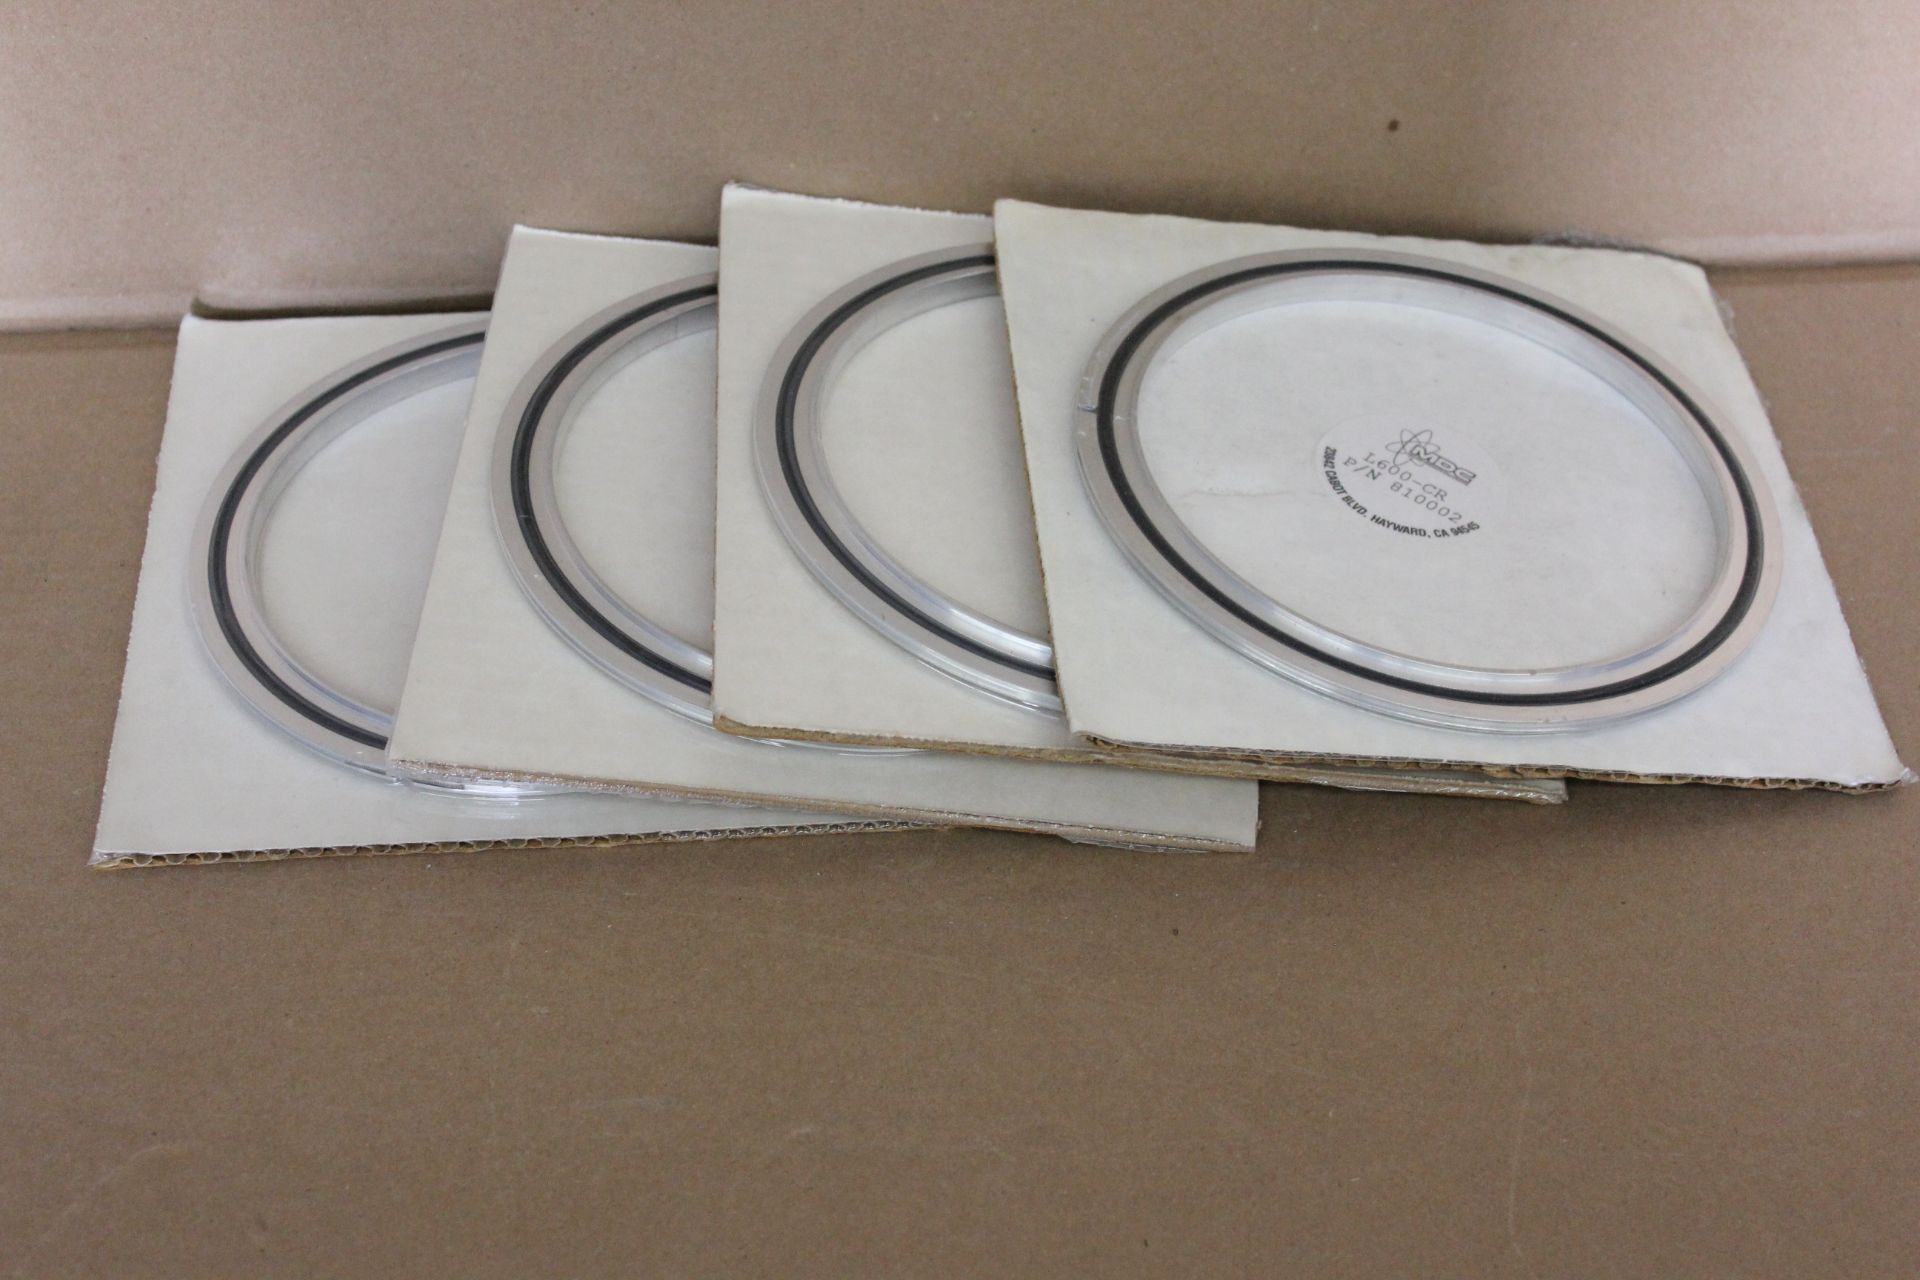 LOT OF 4 NEW MDC ALUMINIUM VACUUM FLANGE CENTERING RING